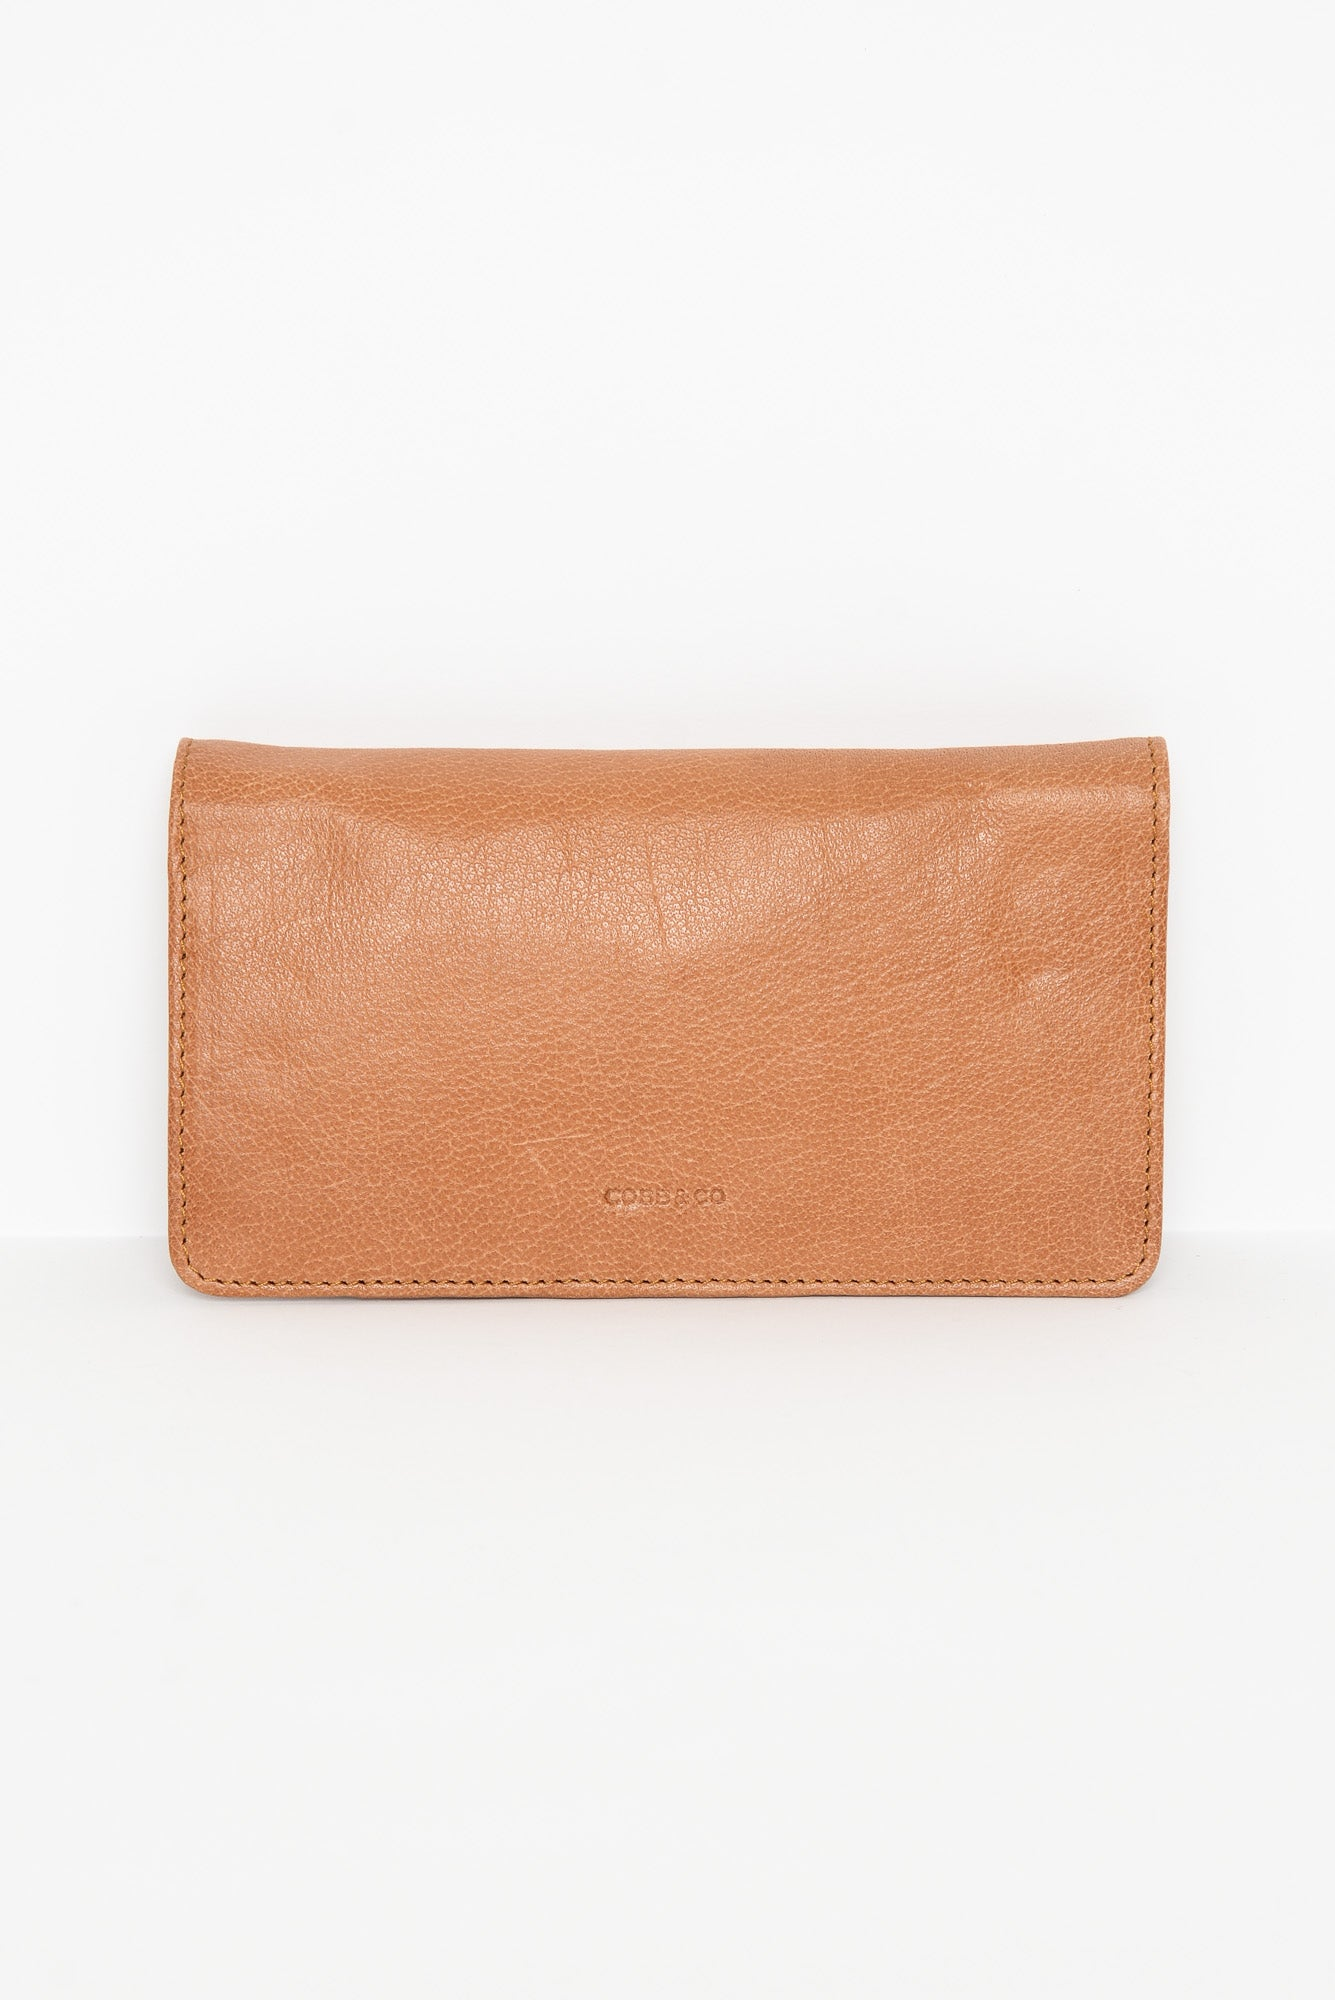 Stirling Tan Leather Phone Wallet